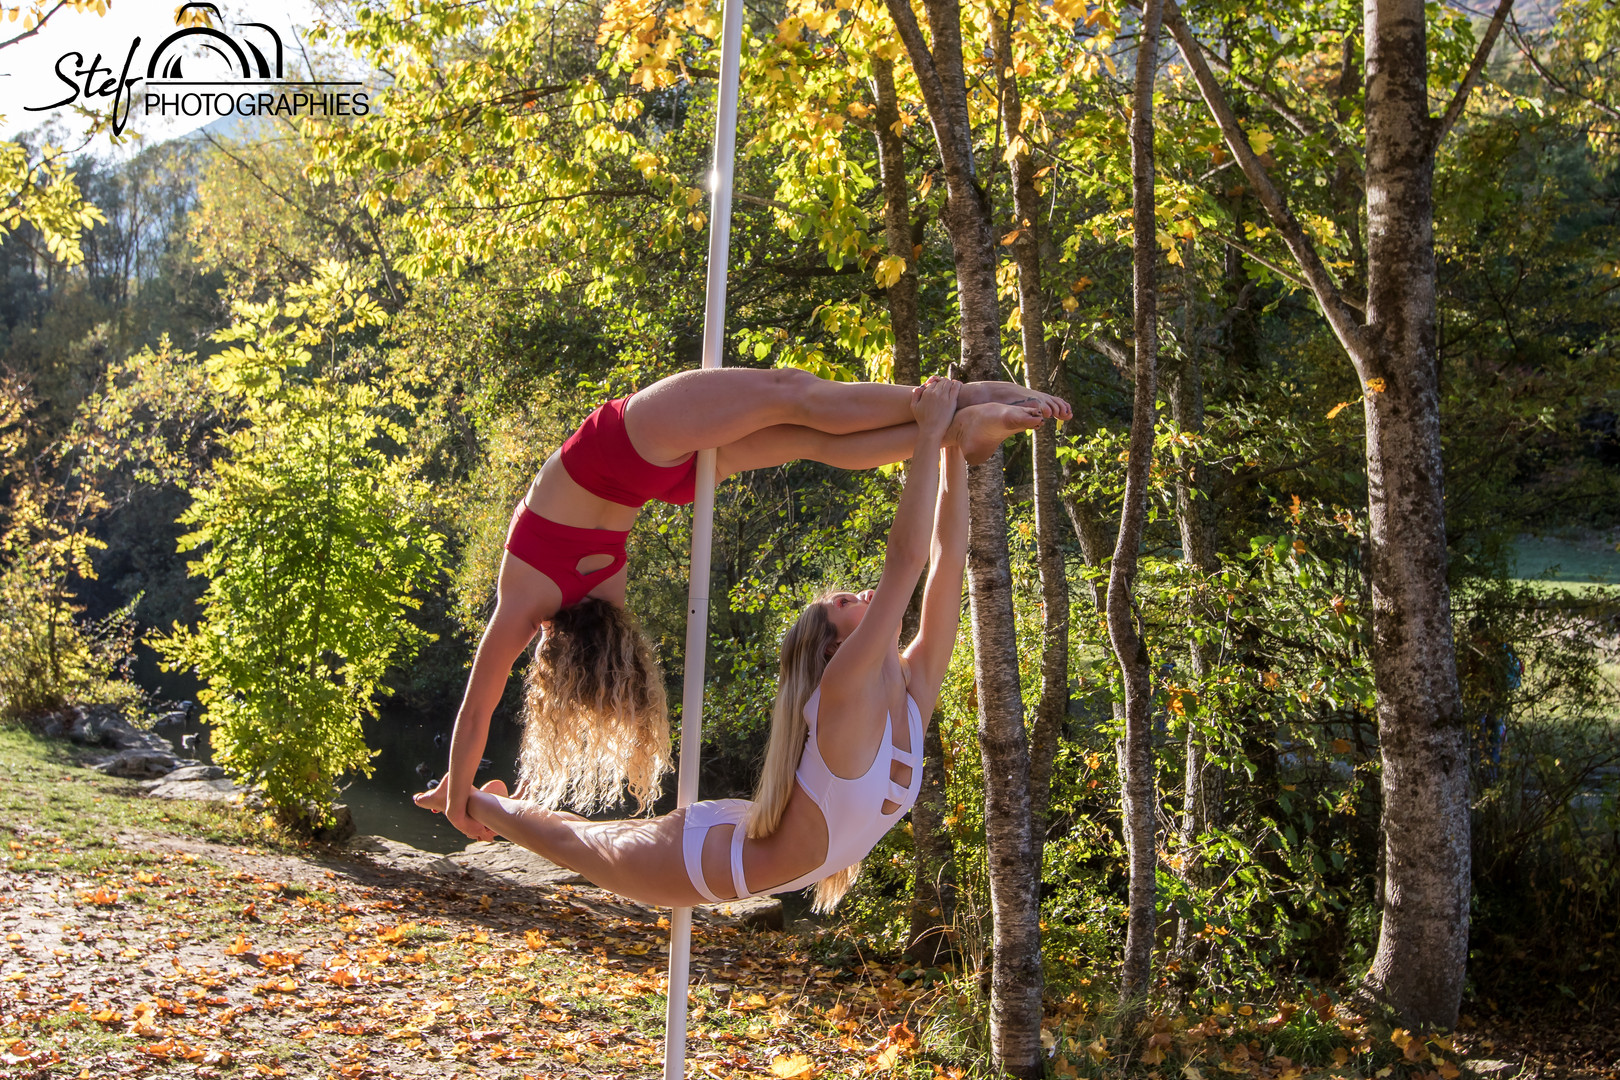 SHOOTING POLE DANCE OCTOBRE 2019 S.DEMAR